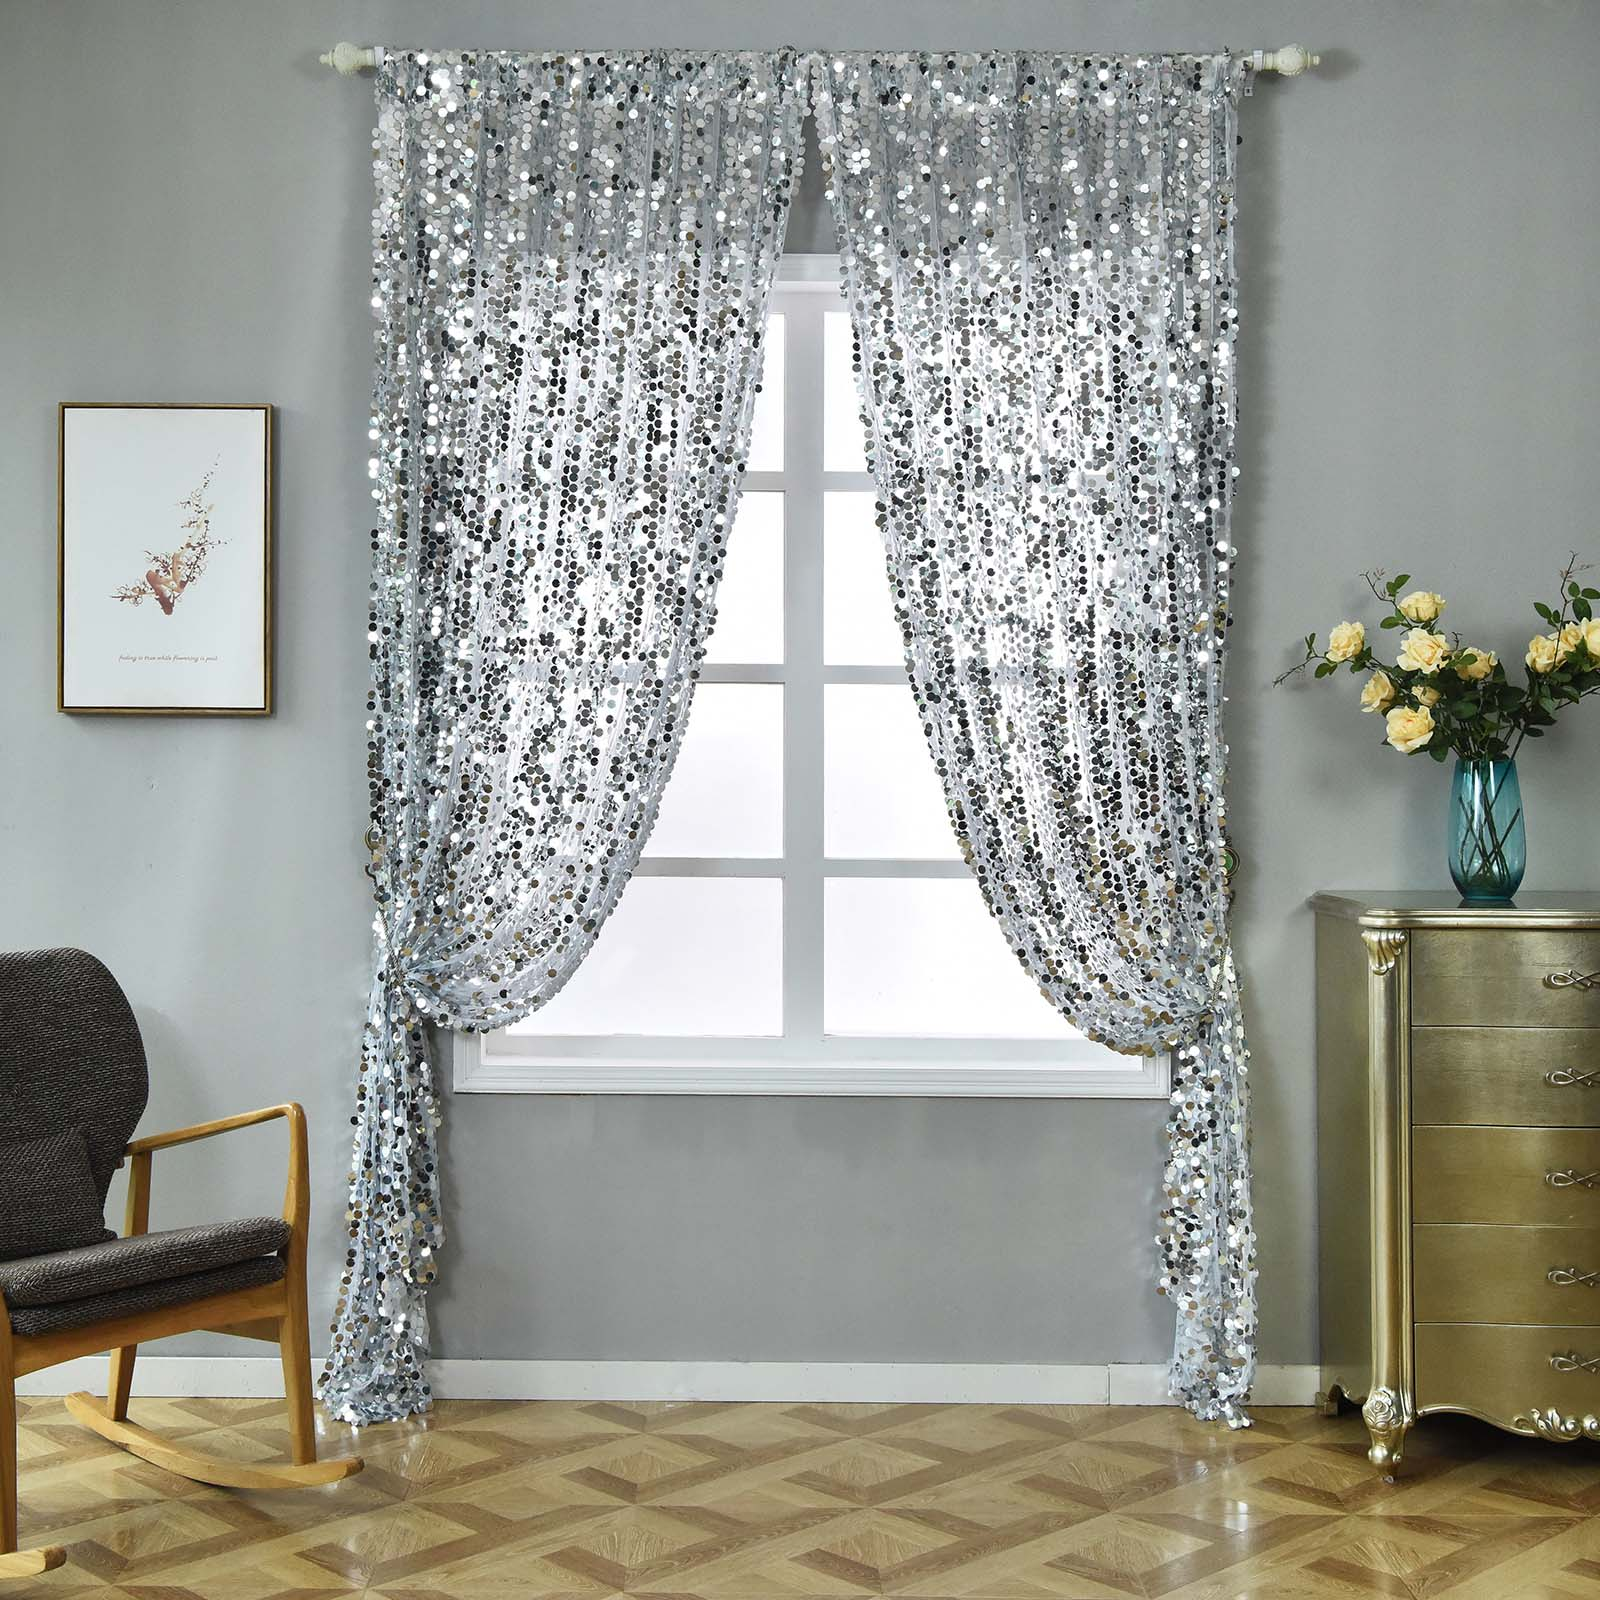 Big Payette Sequin Curtains 52x84 Silver Pack Of 2 Window Treatment Panels With Rod Pockets